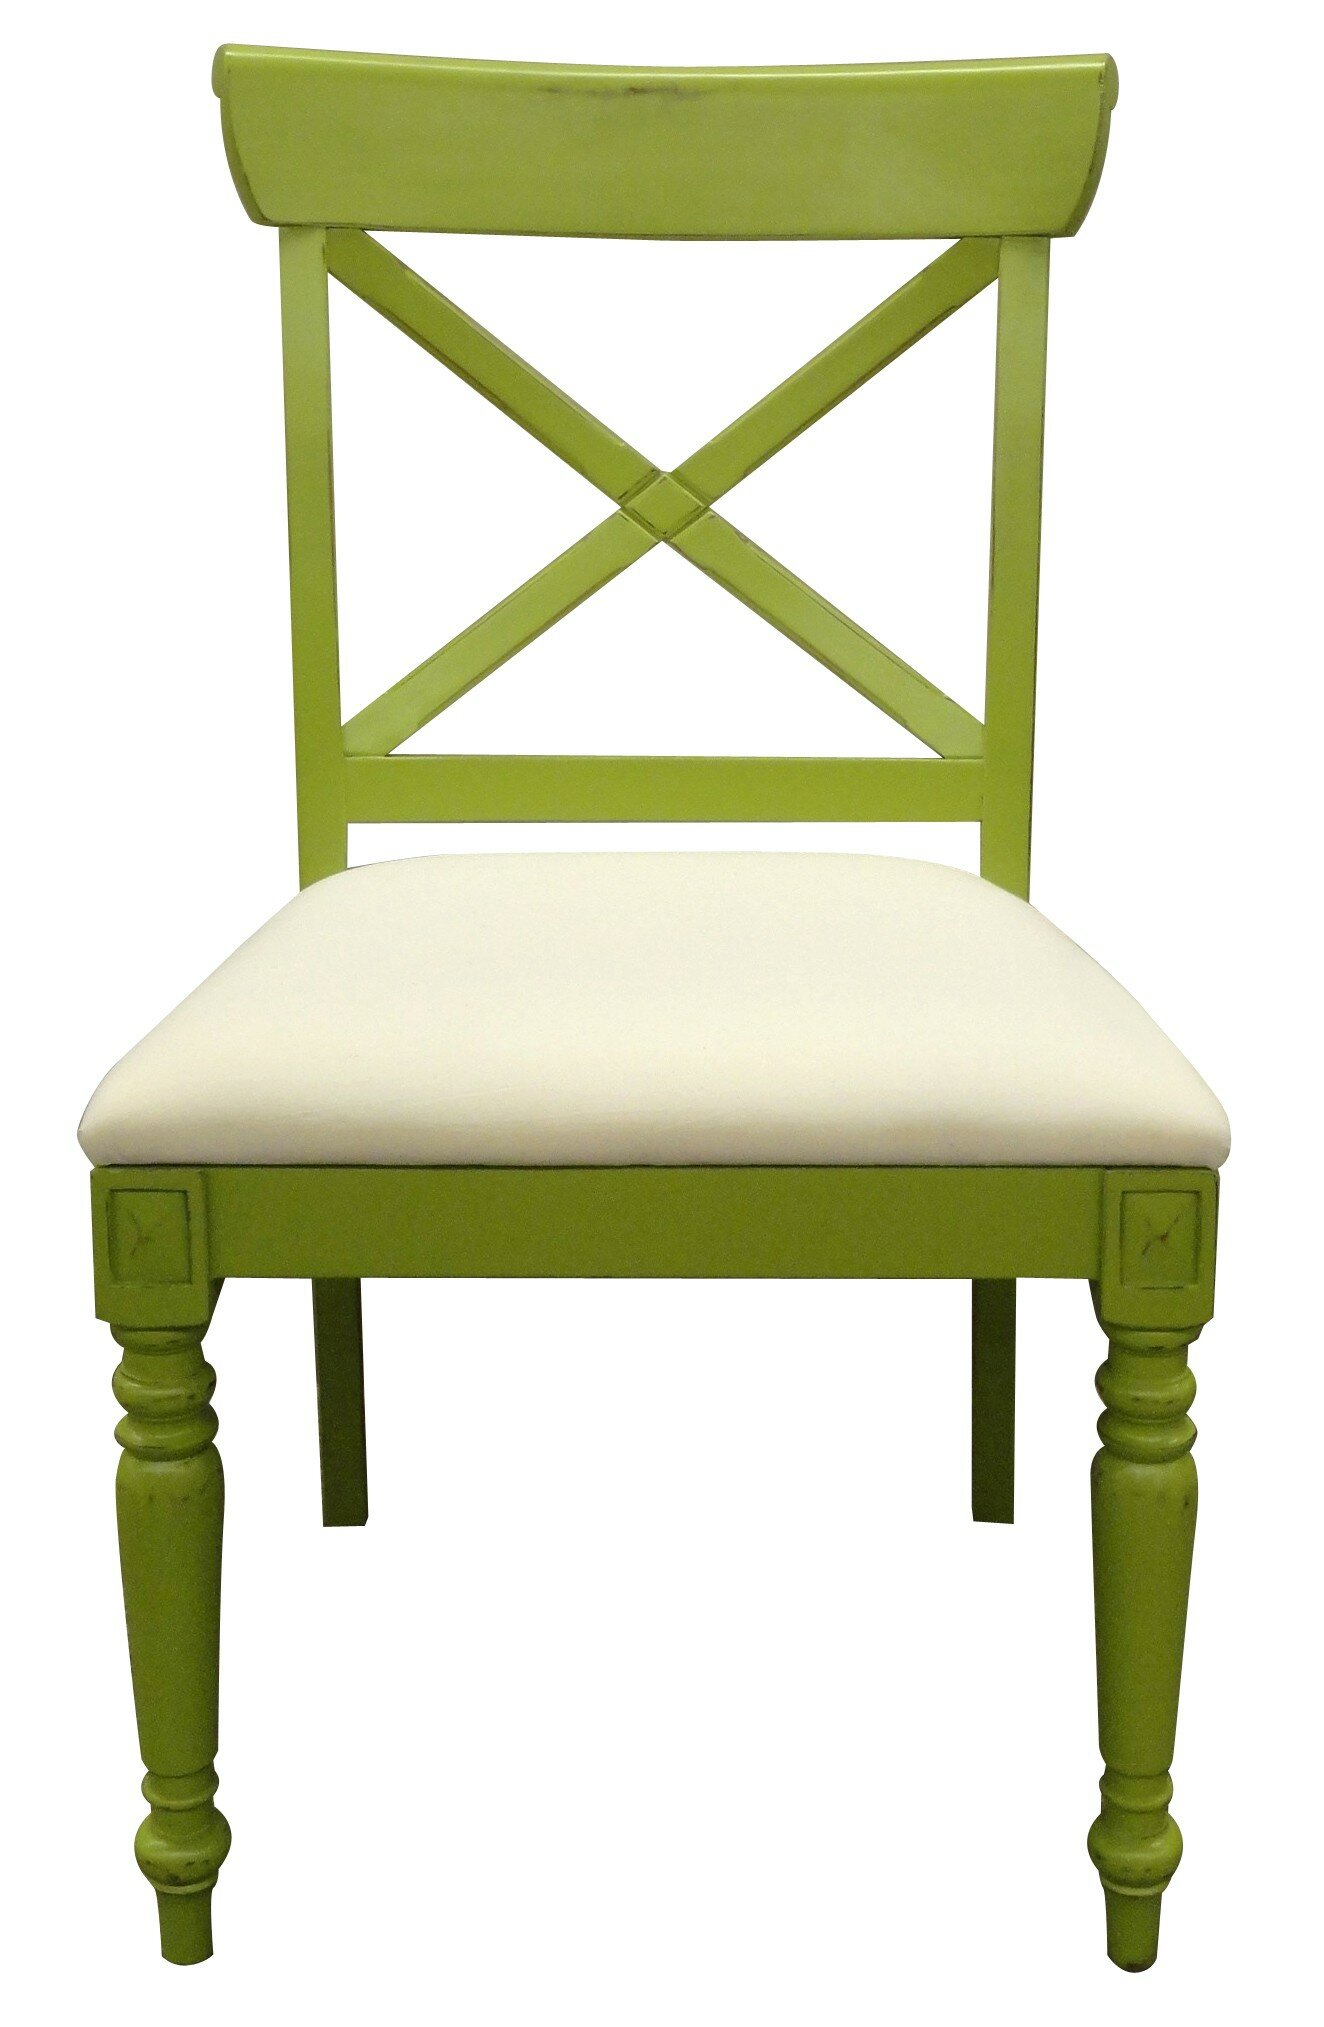 Trade Winds Furniture Cross Back Dining Chair | Perigold